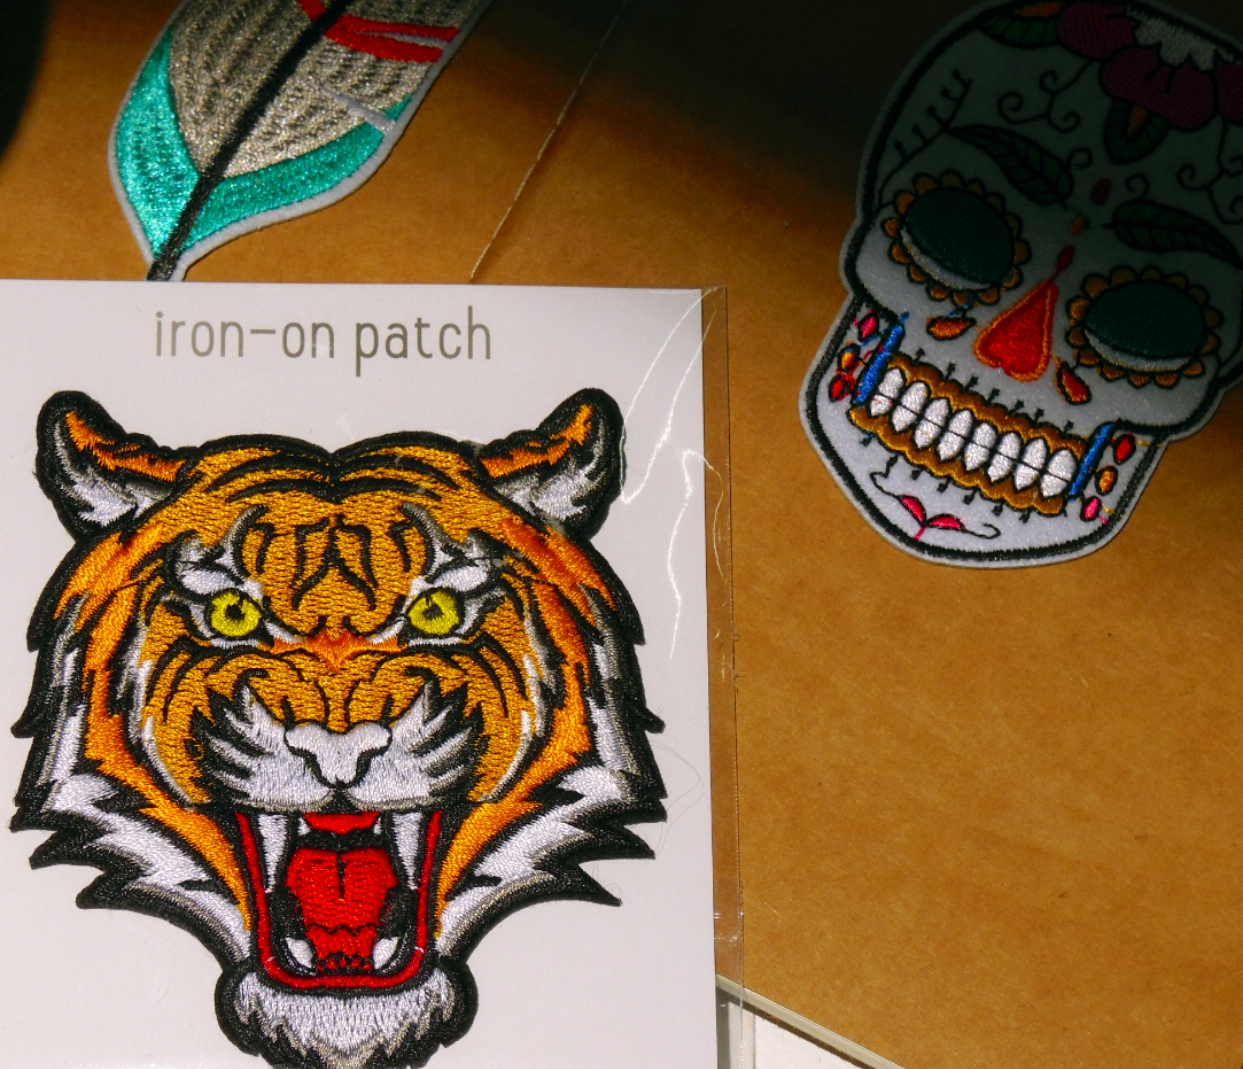 judith in wonderland  #patches #tiger #embroidery #bijkiki